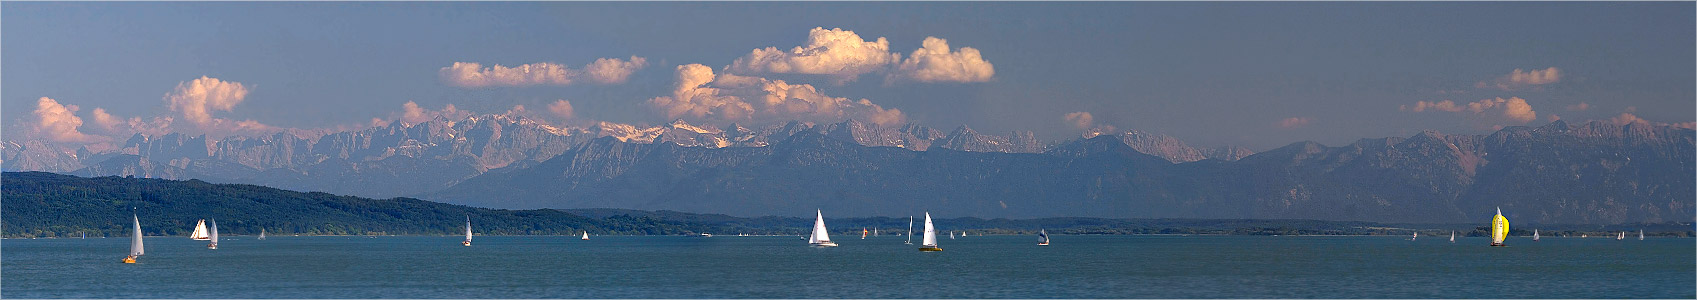 Am Ammersee